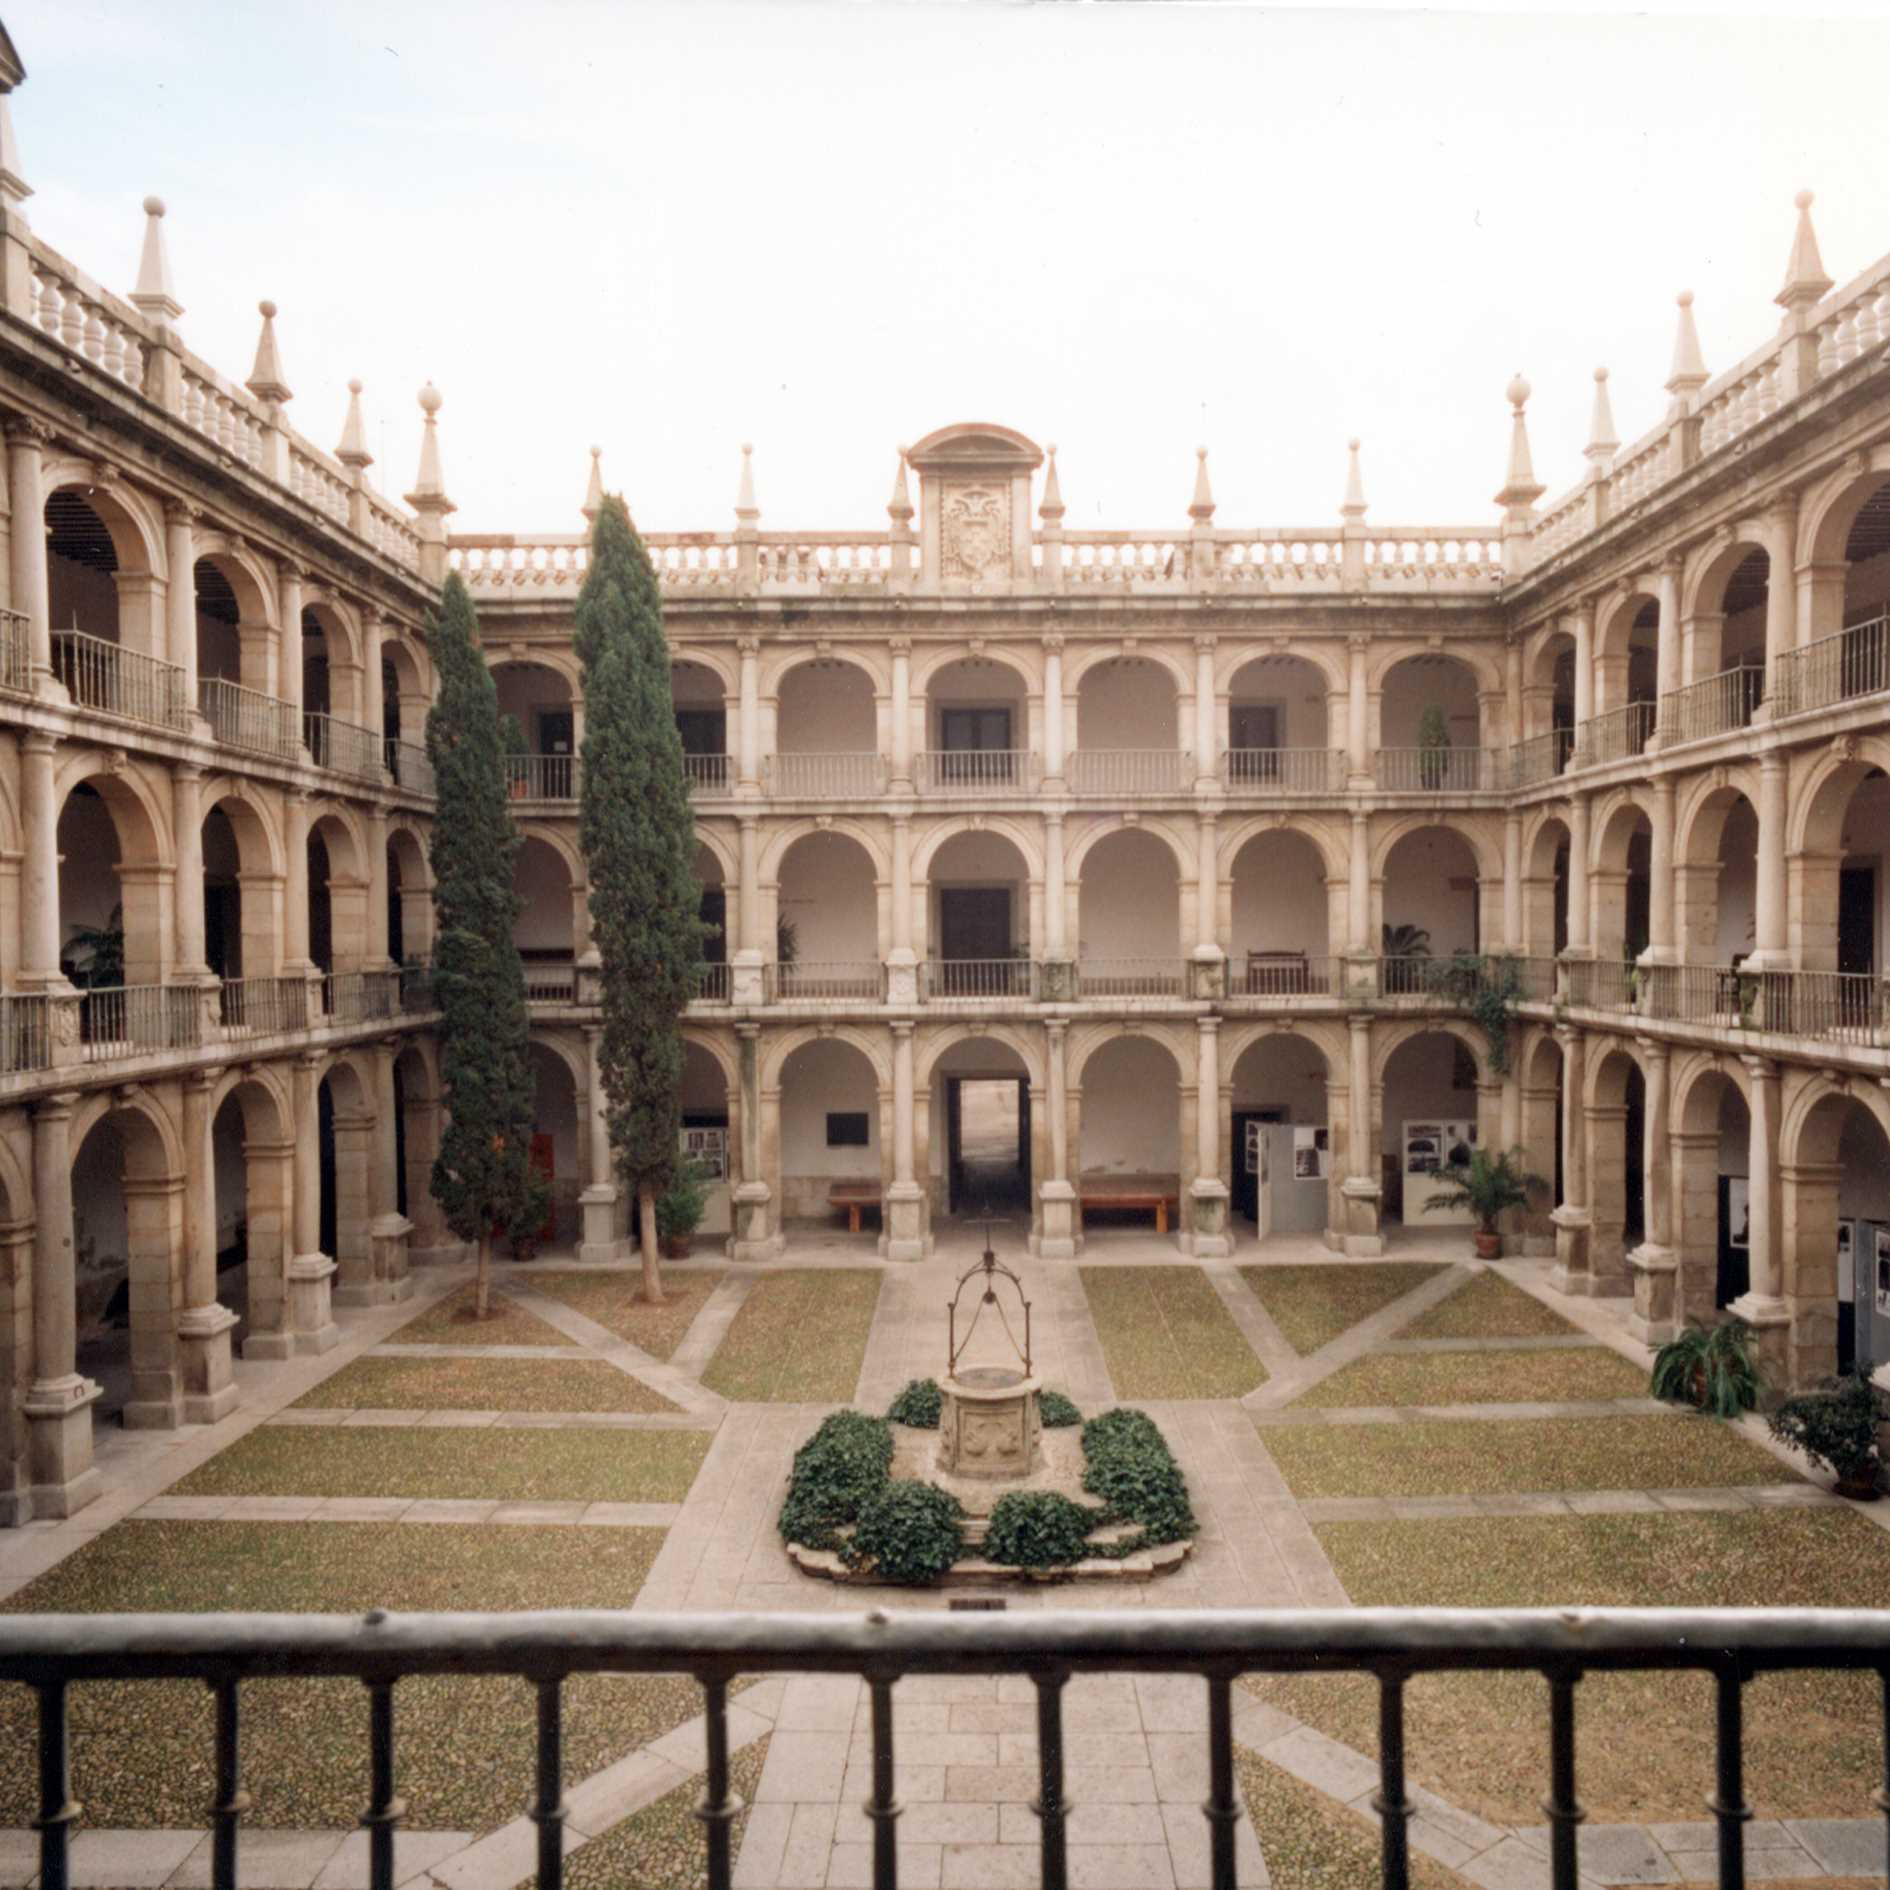 The University of Alcalá